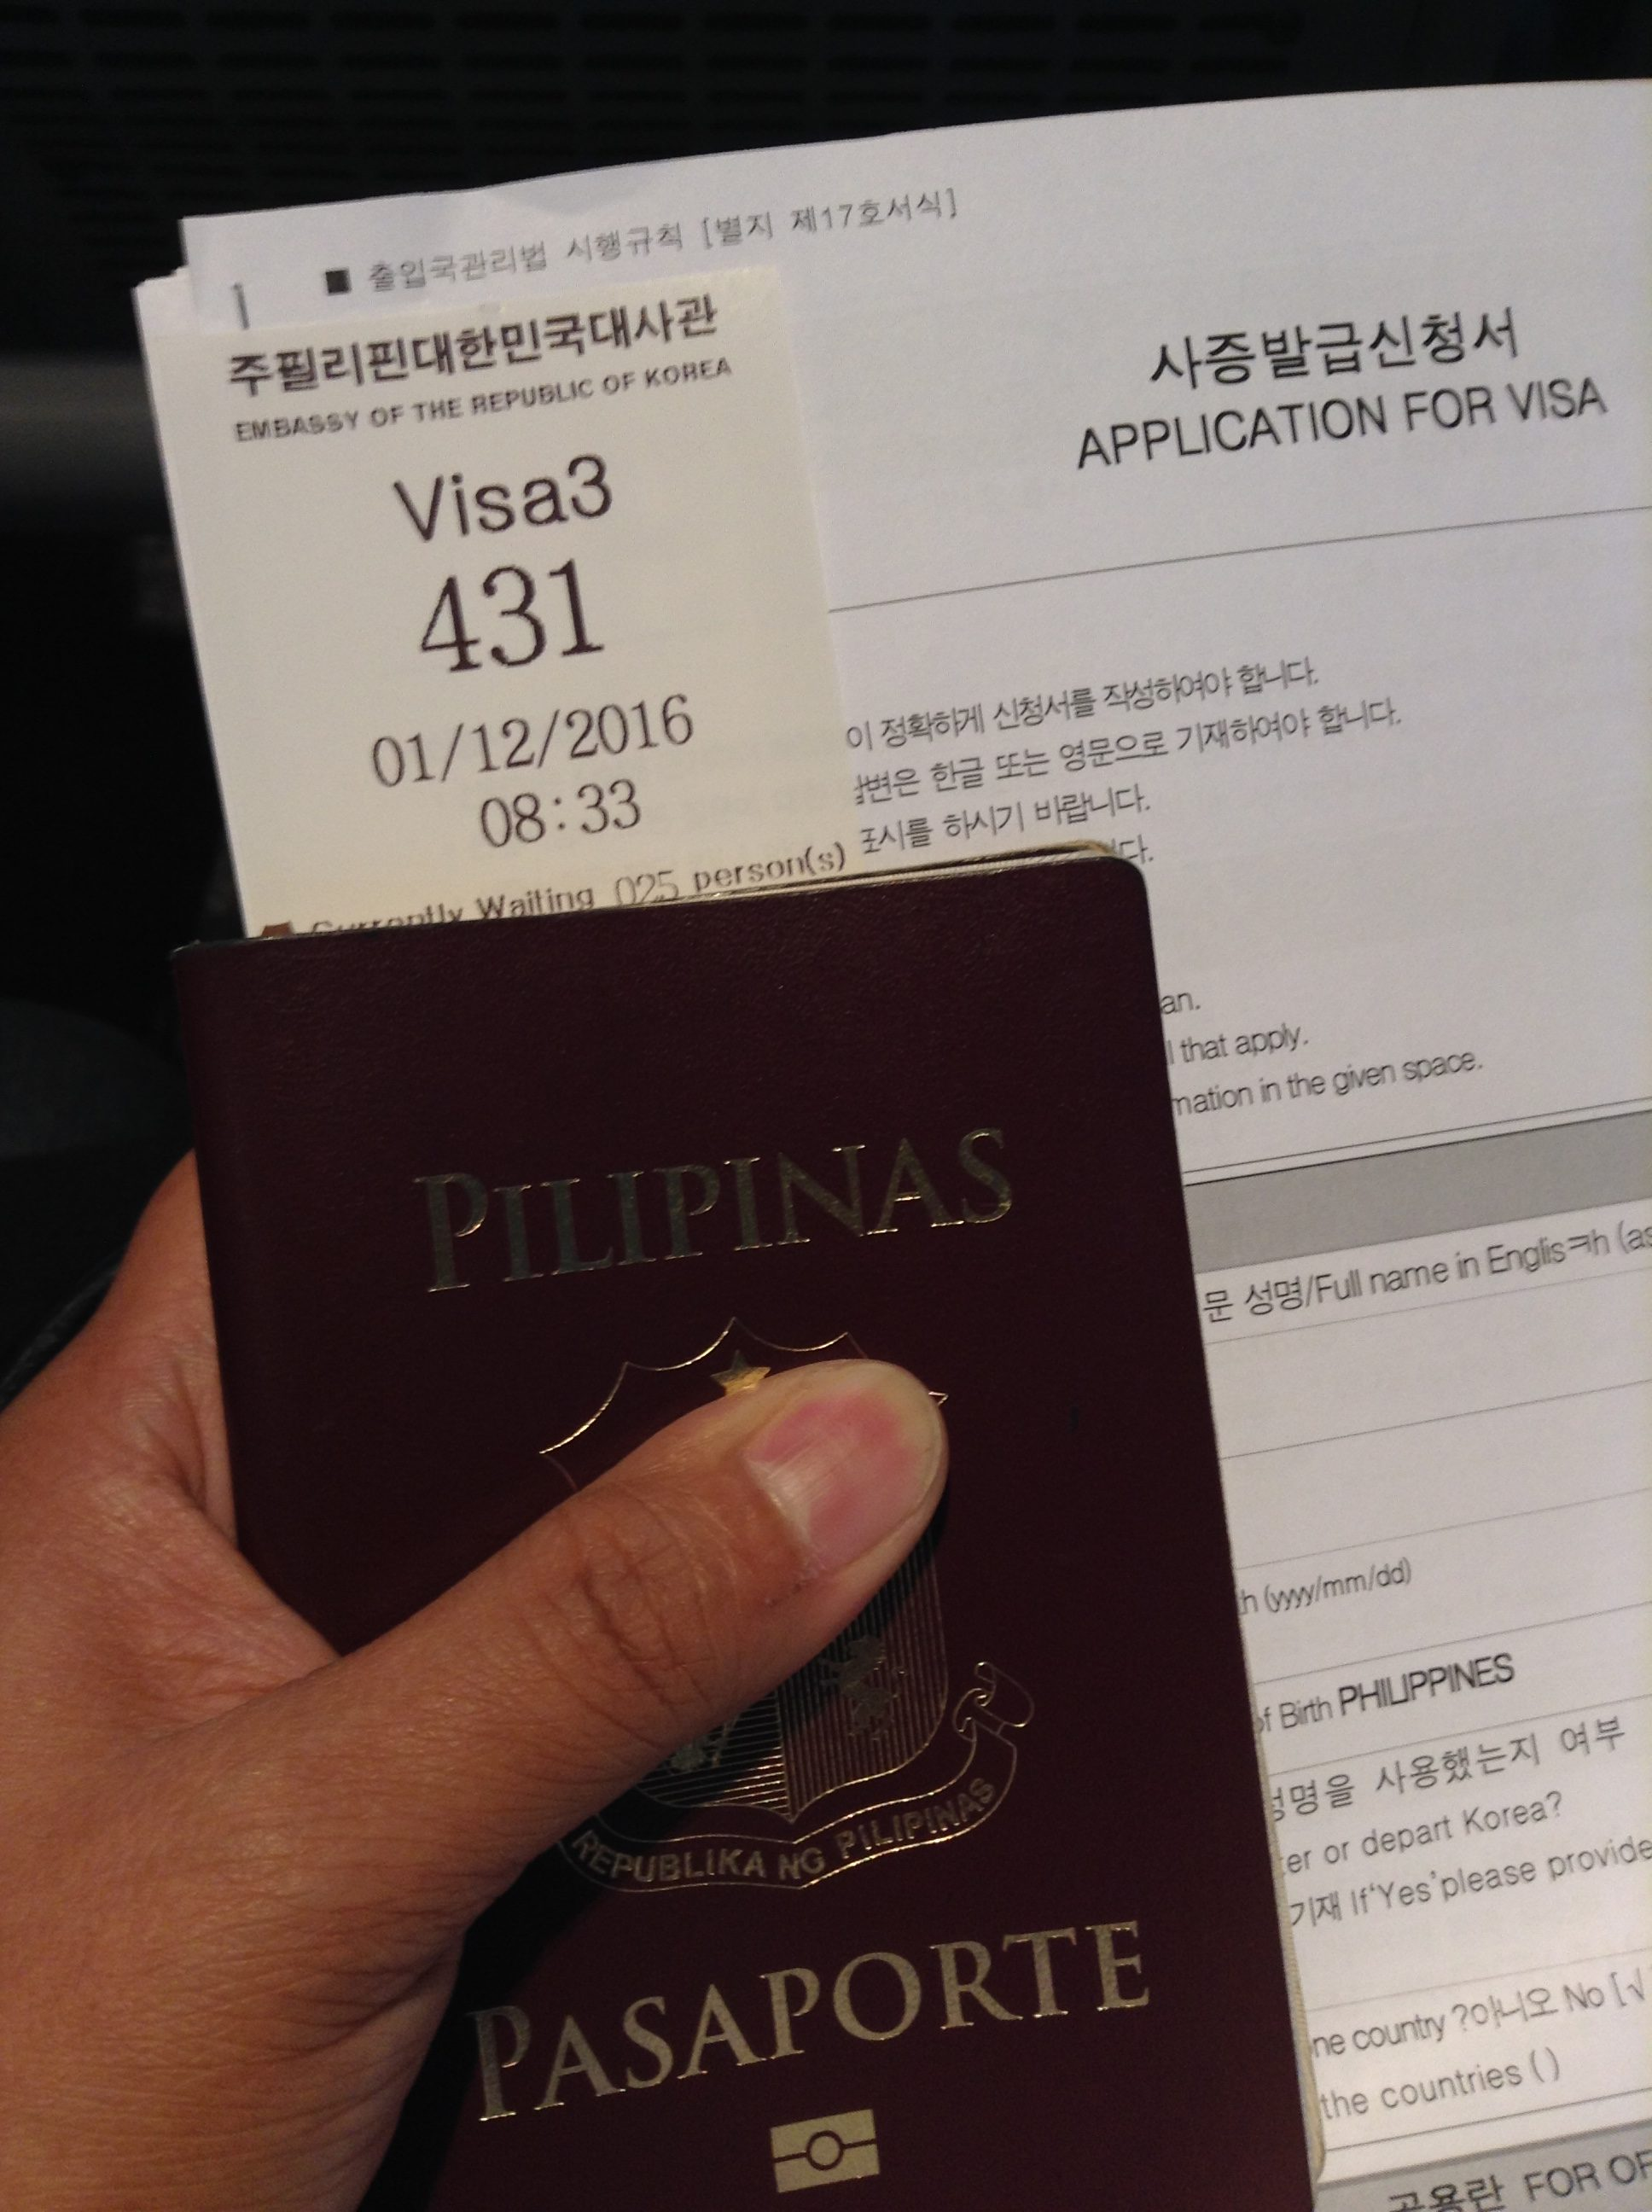 Waiting for my turn at Window 3 - Korean Embassy Philippines visa